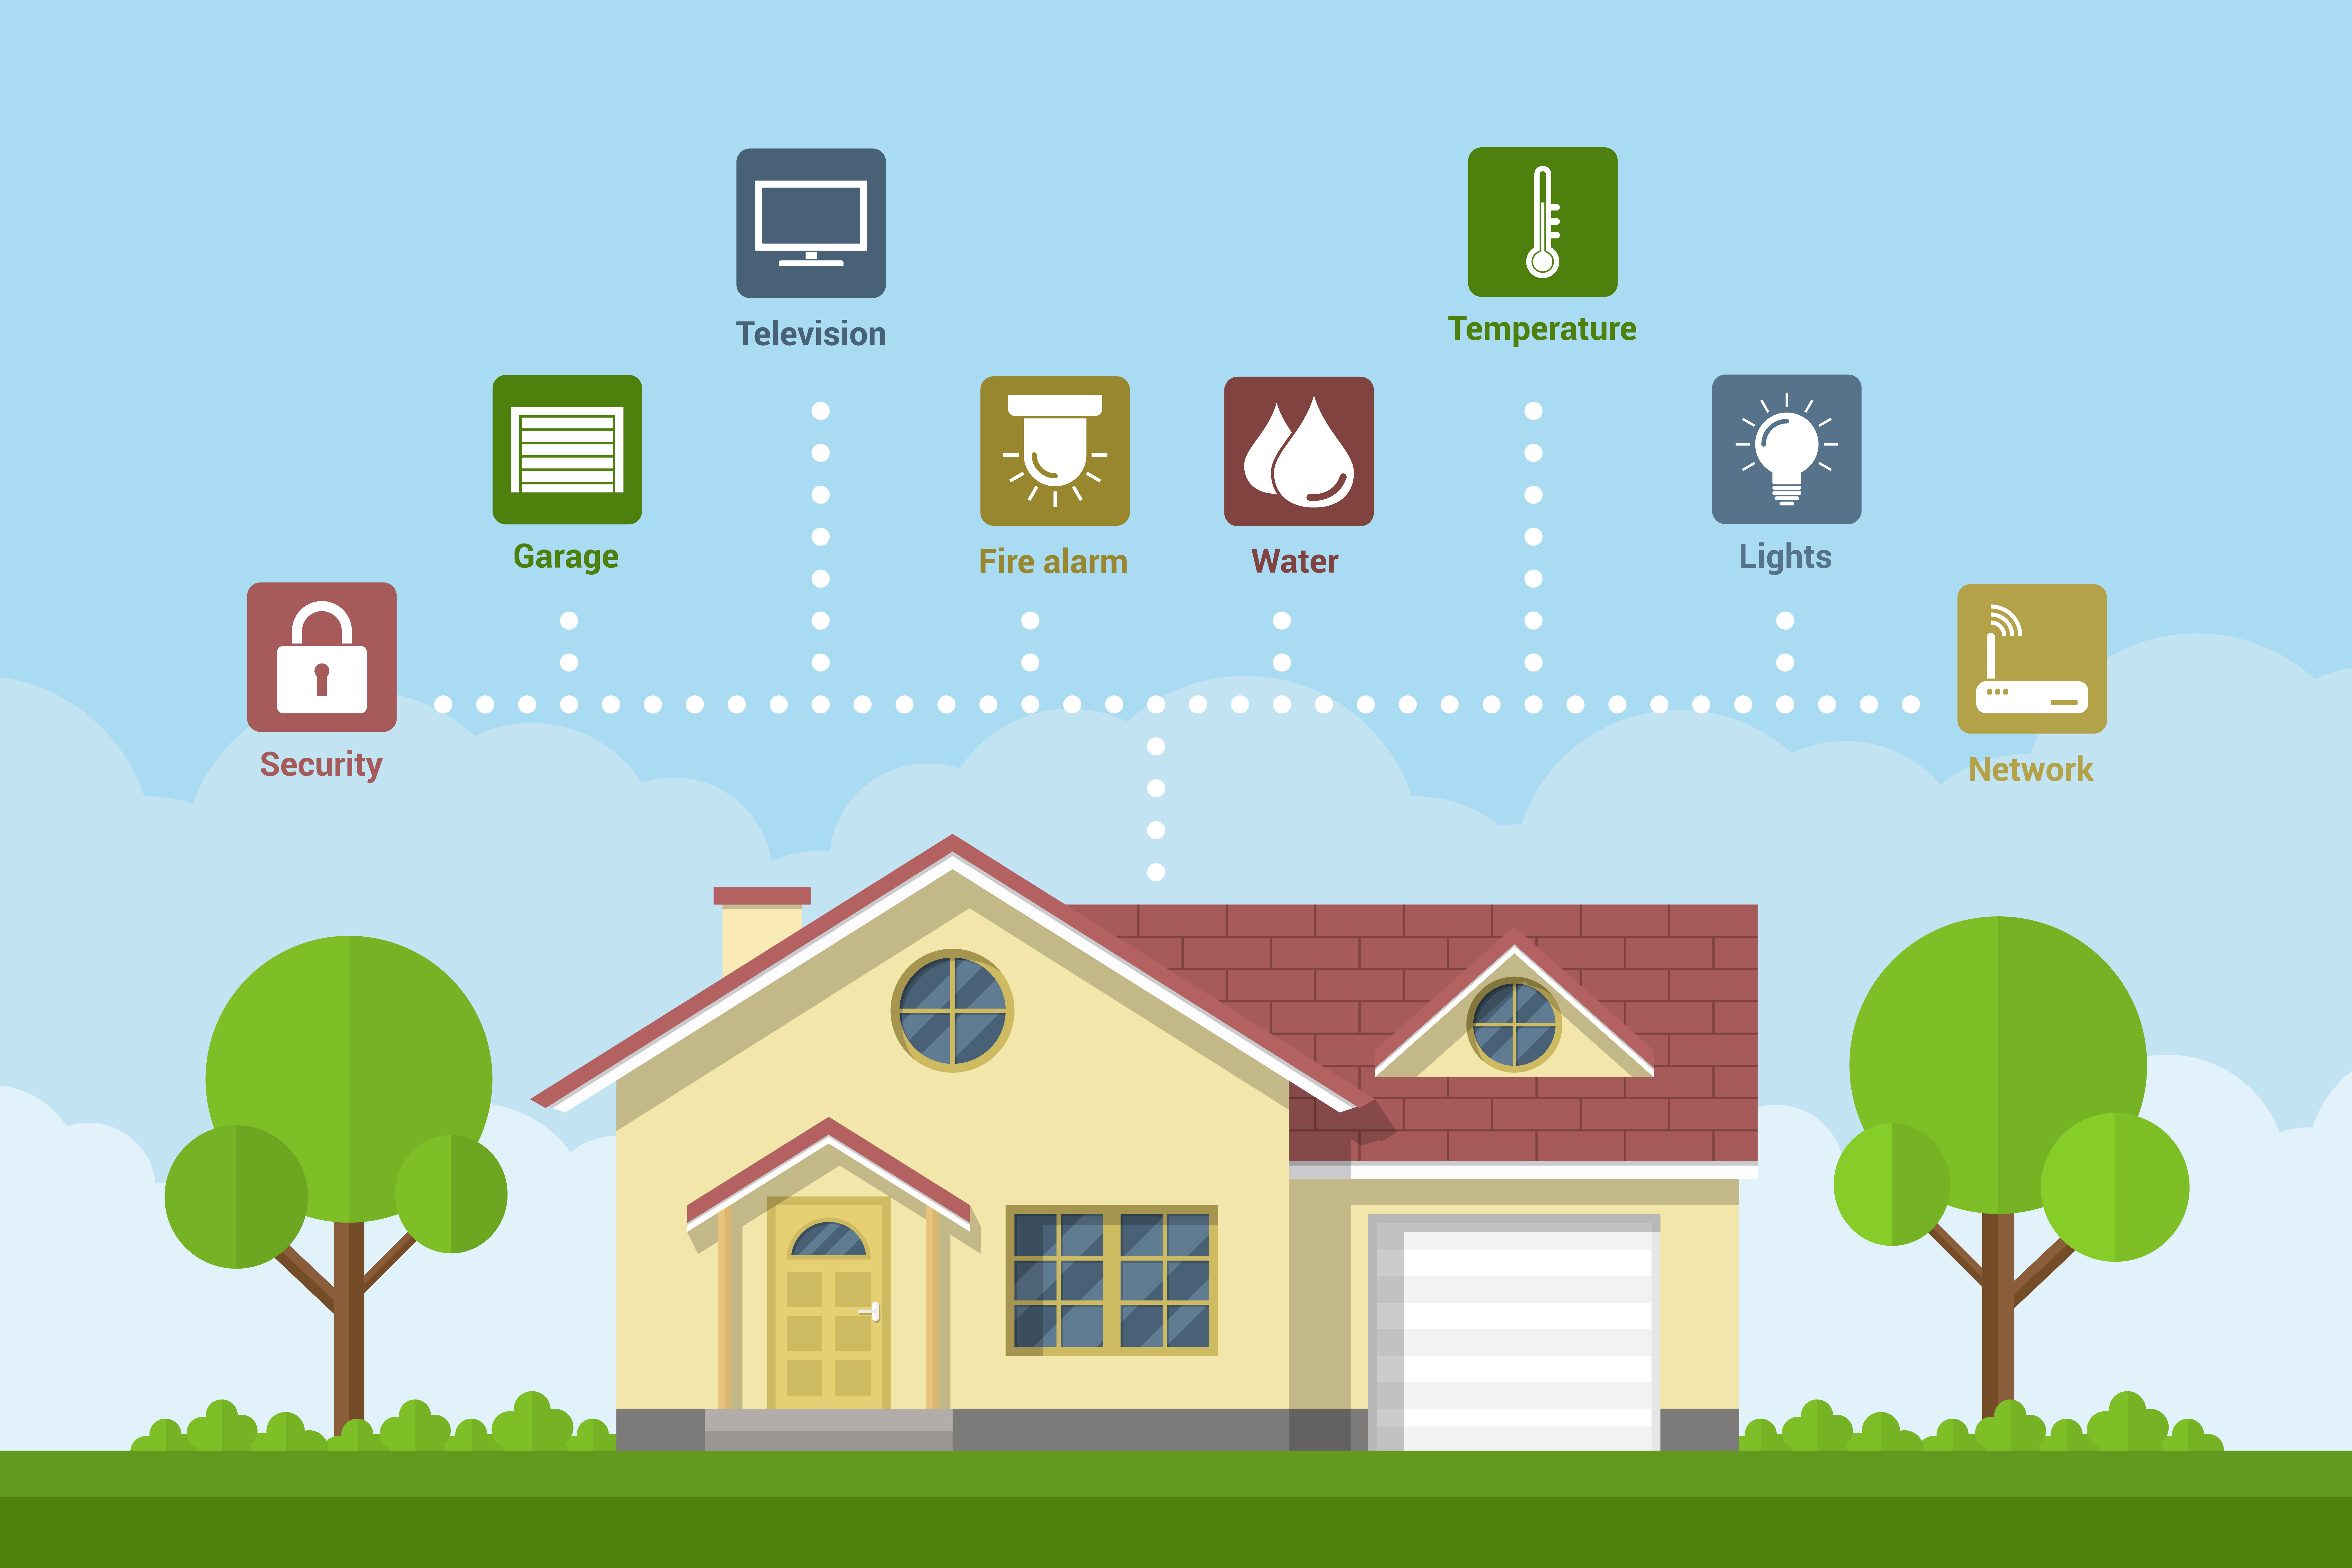 home network and IoT devices